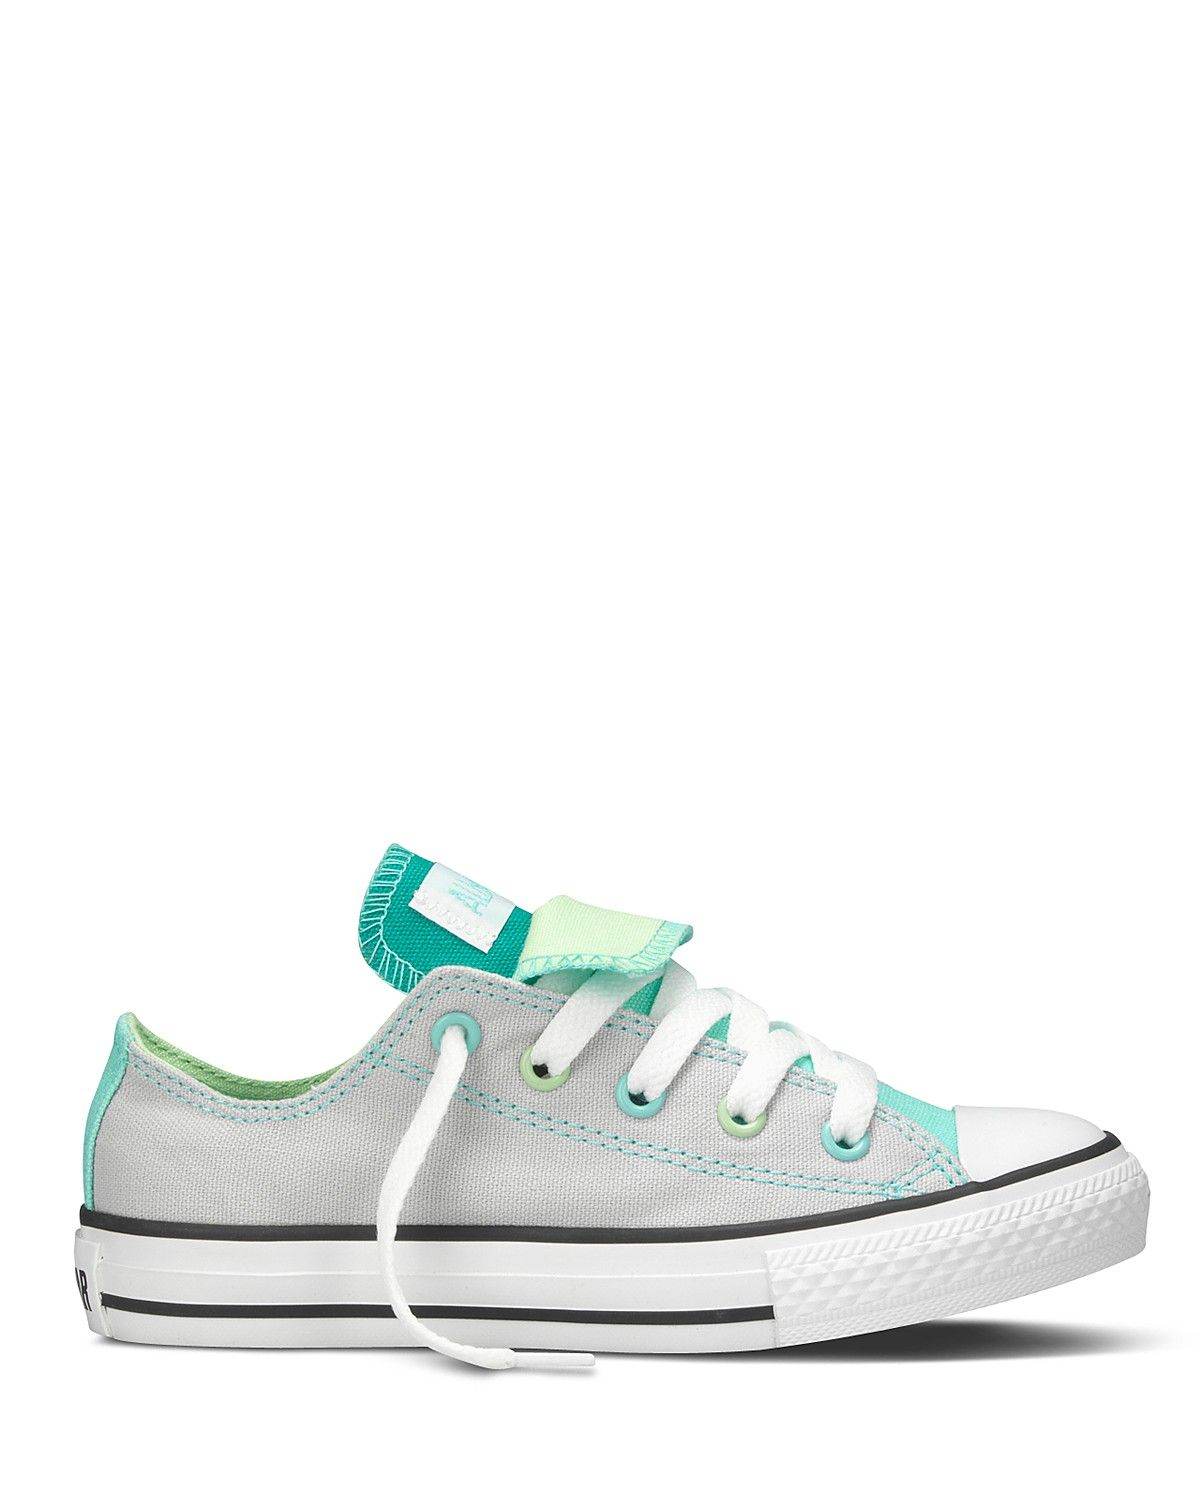 Not a big fan of these kinds of shoes but I love these & the